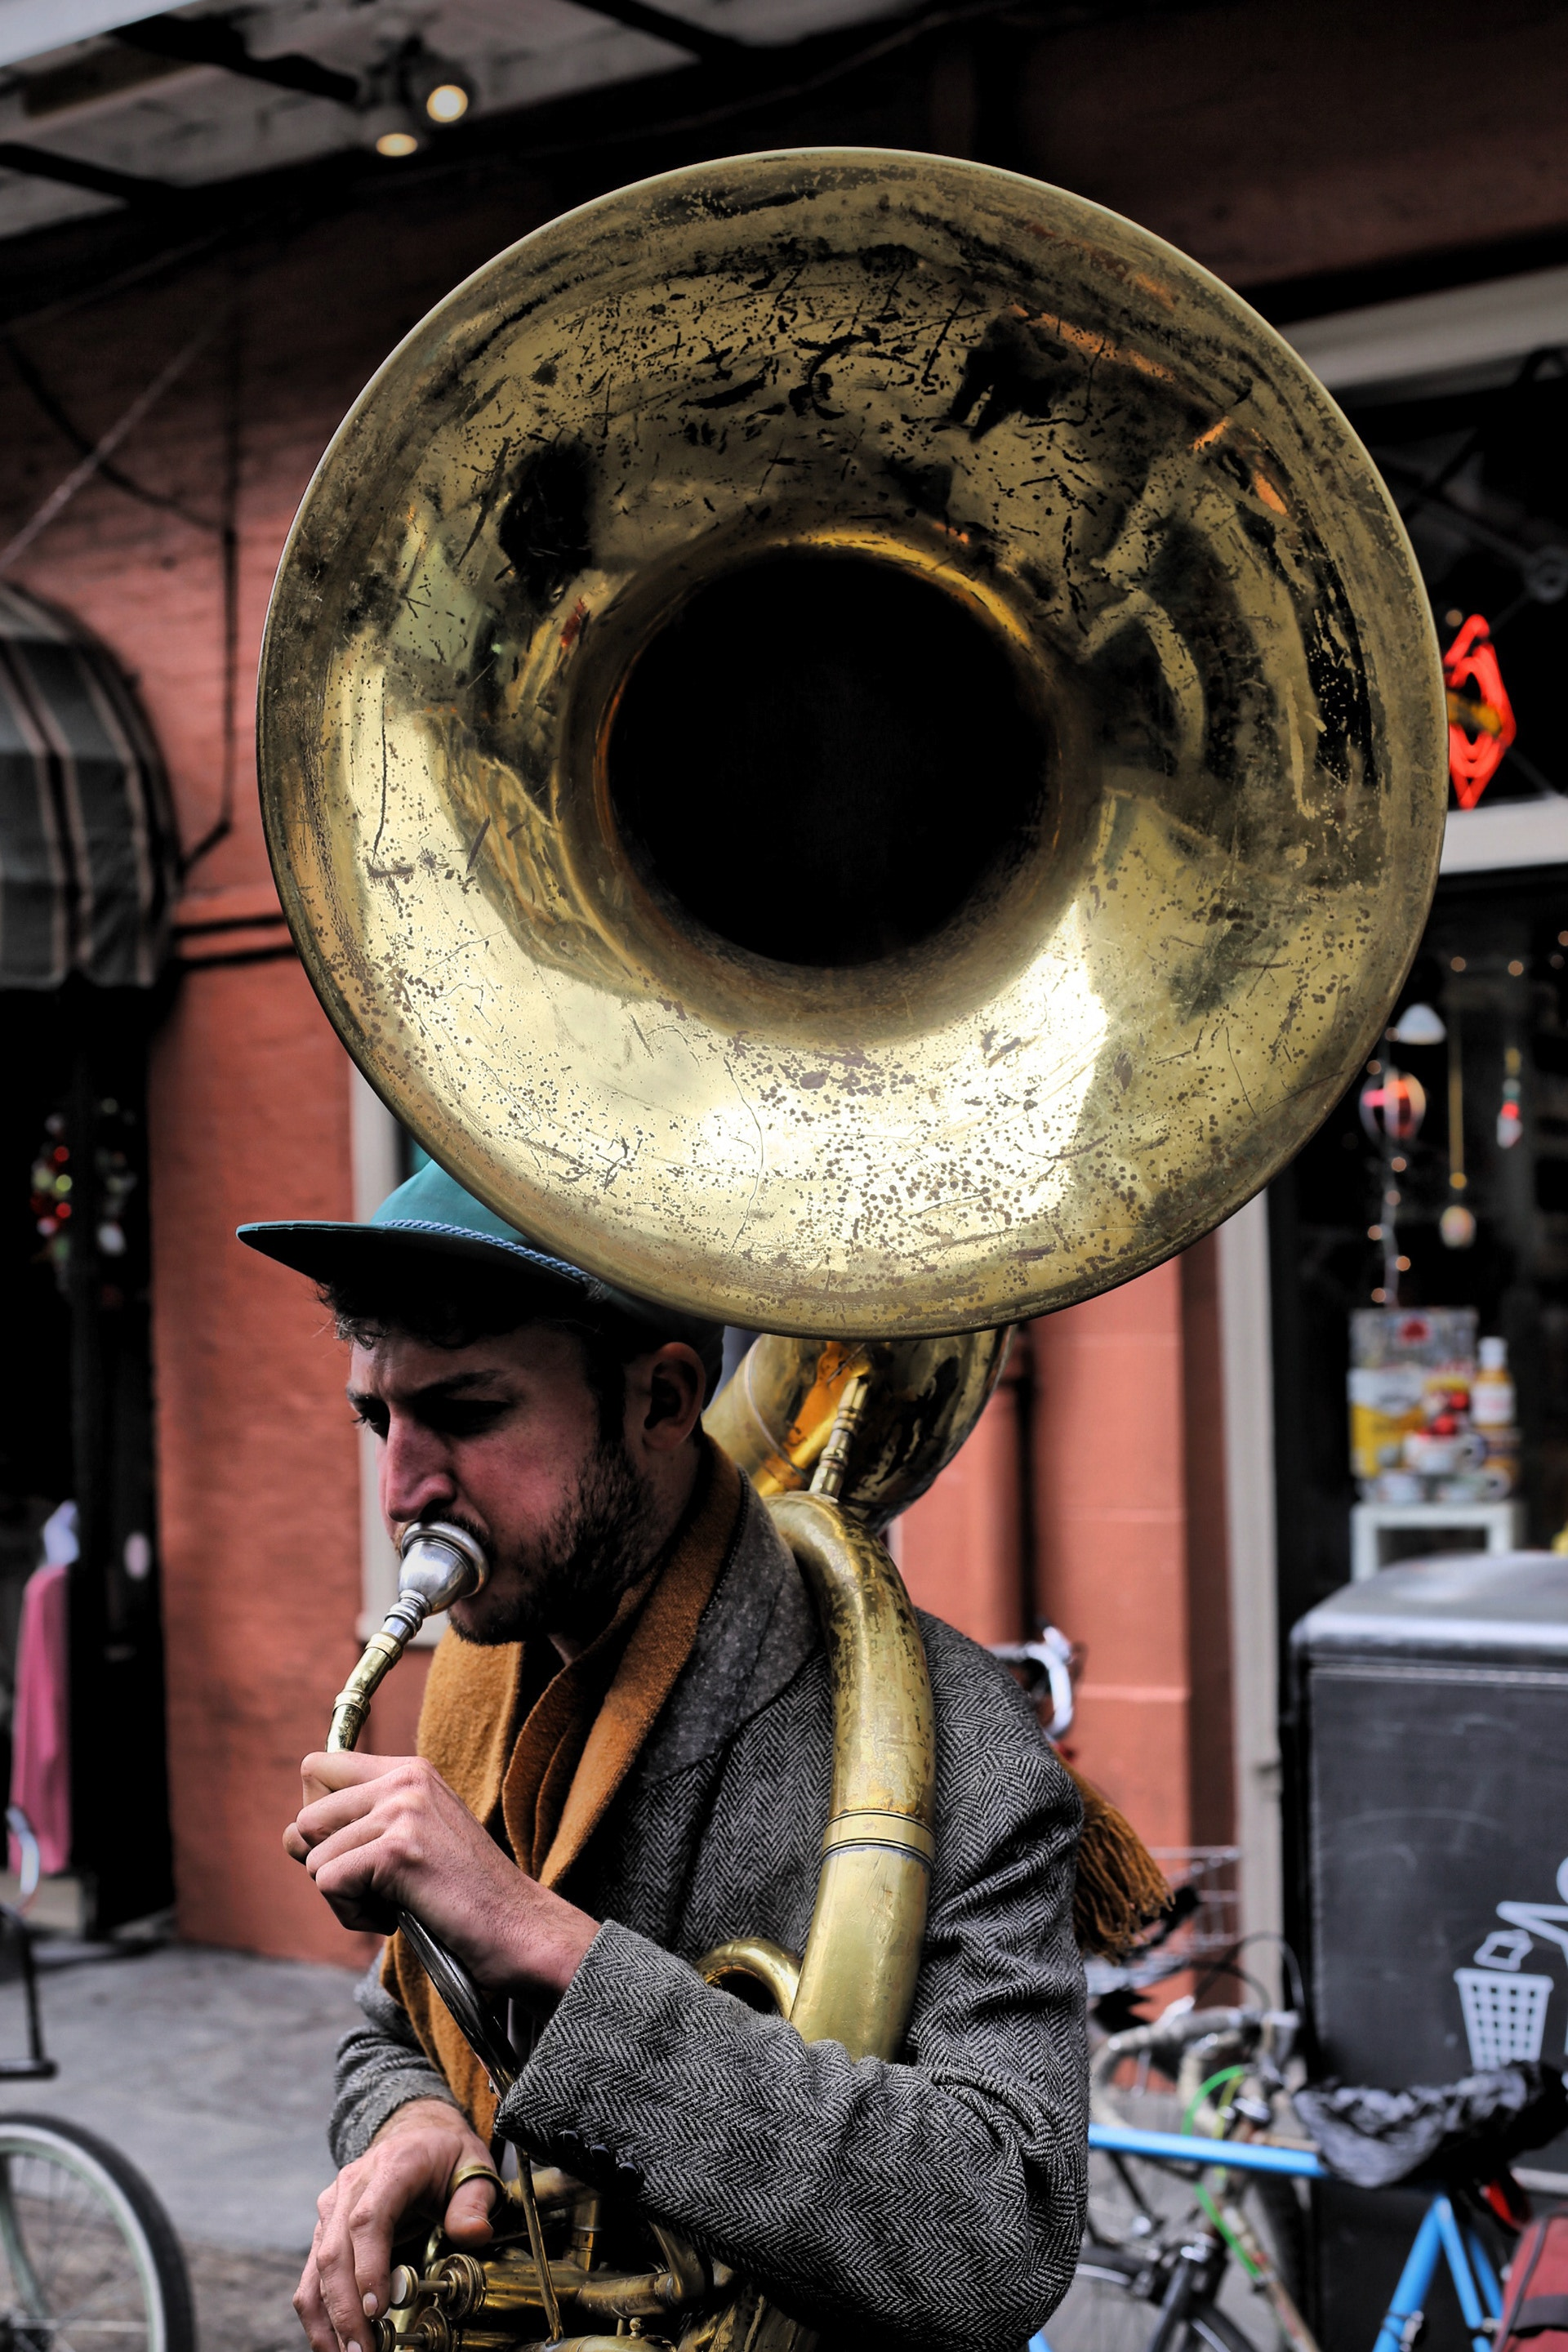 A man playing a brass instrument.